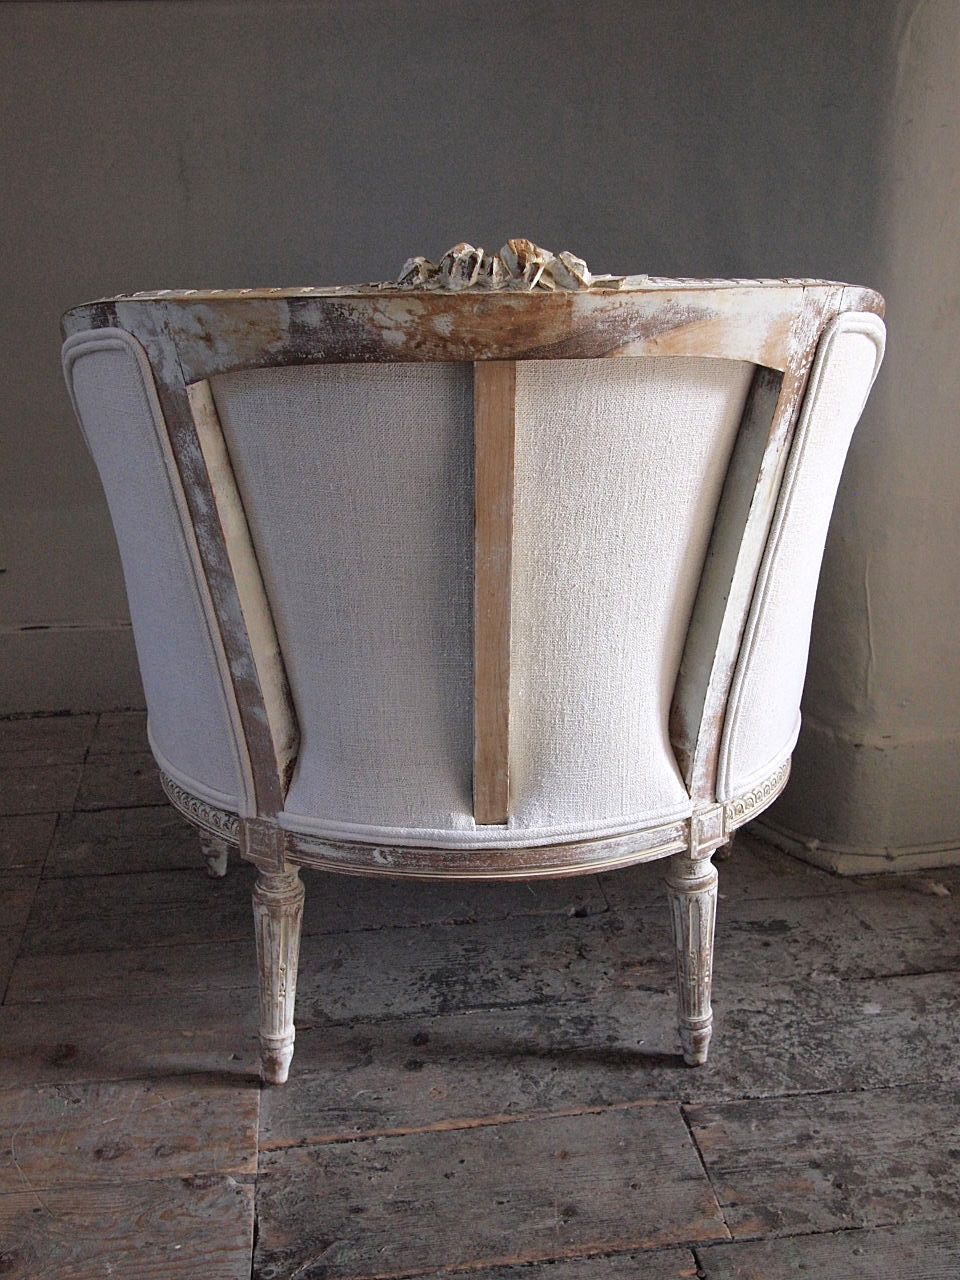 French Antique Tub Chair at Puckhaber Decorative Antiques - French Tub Chair - Google Search Furniture Pinterest Tub